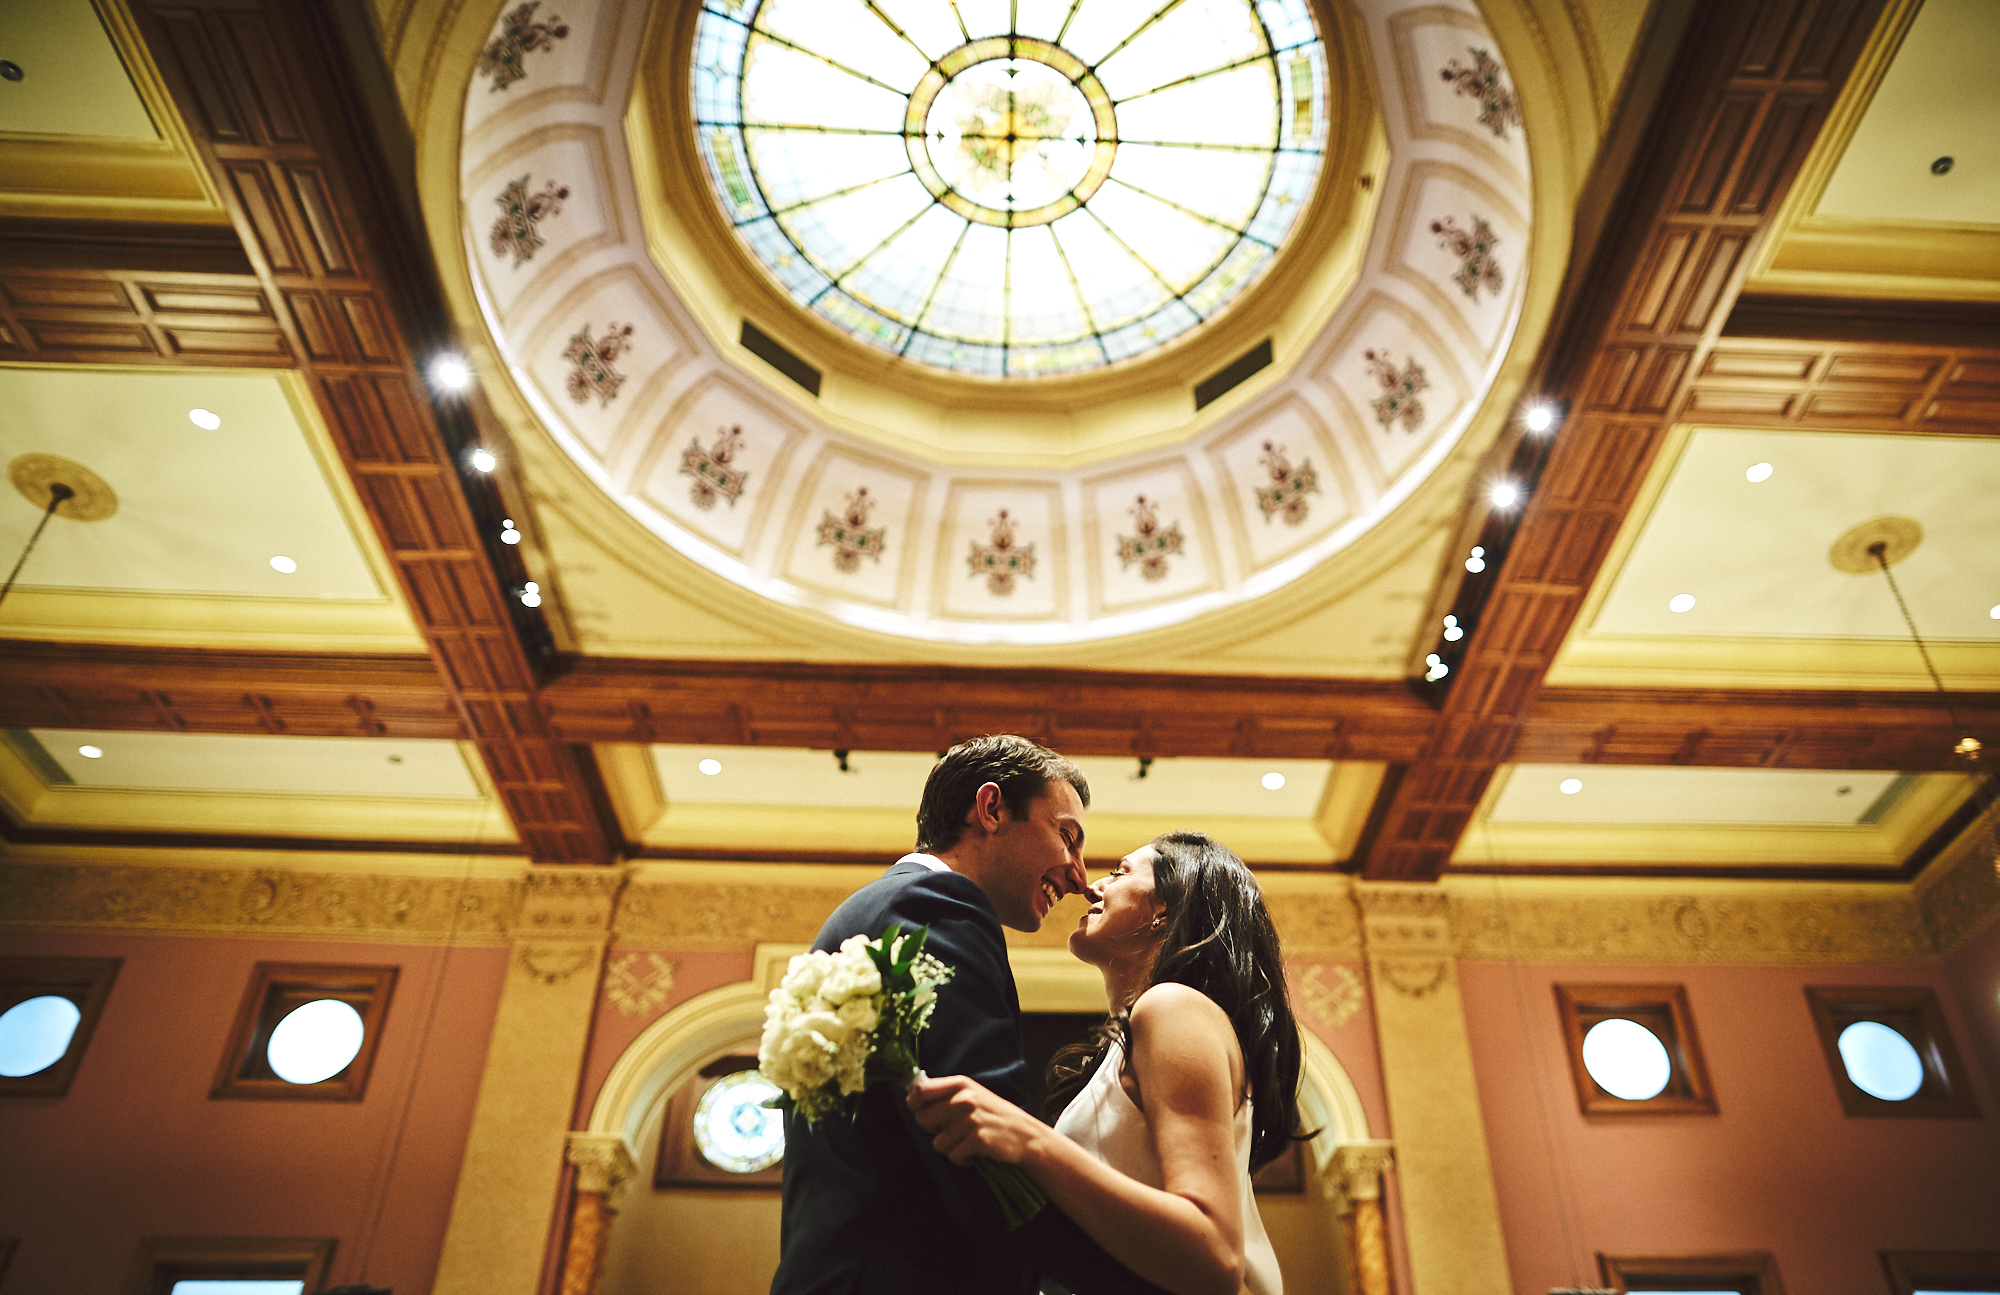 181116_JerseyCityCityHallFallWeddingPhotography_JerseyCityWeddingPhotographer_By_BriJohnsonWeddings_0075.jpg